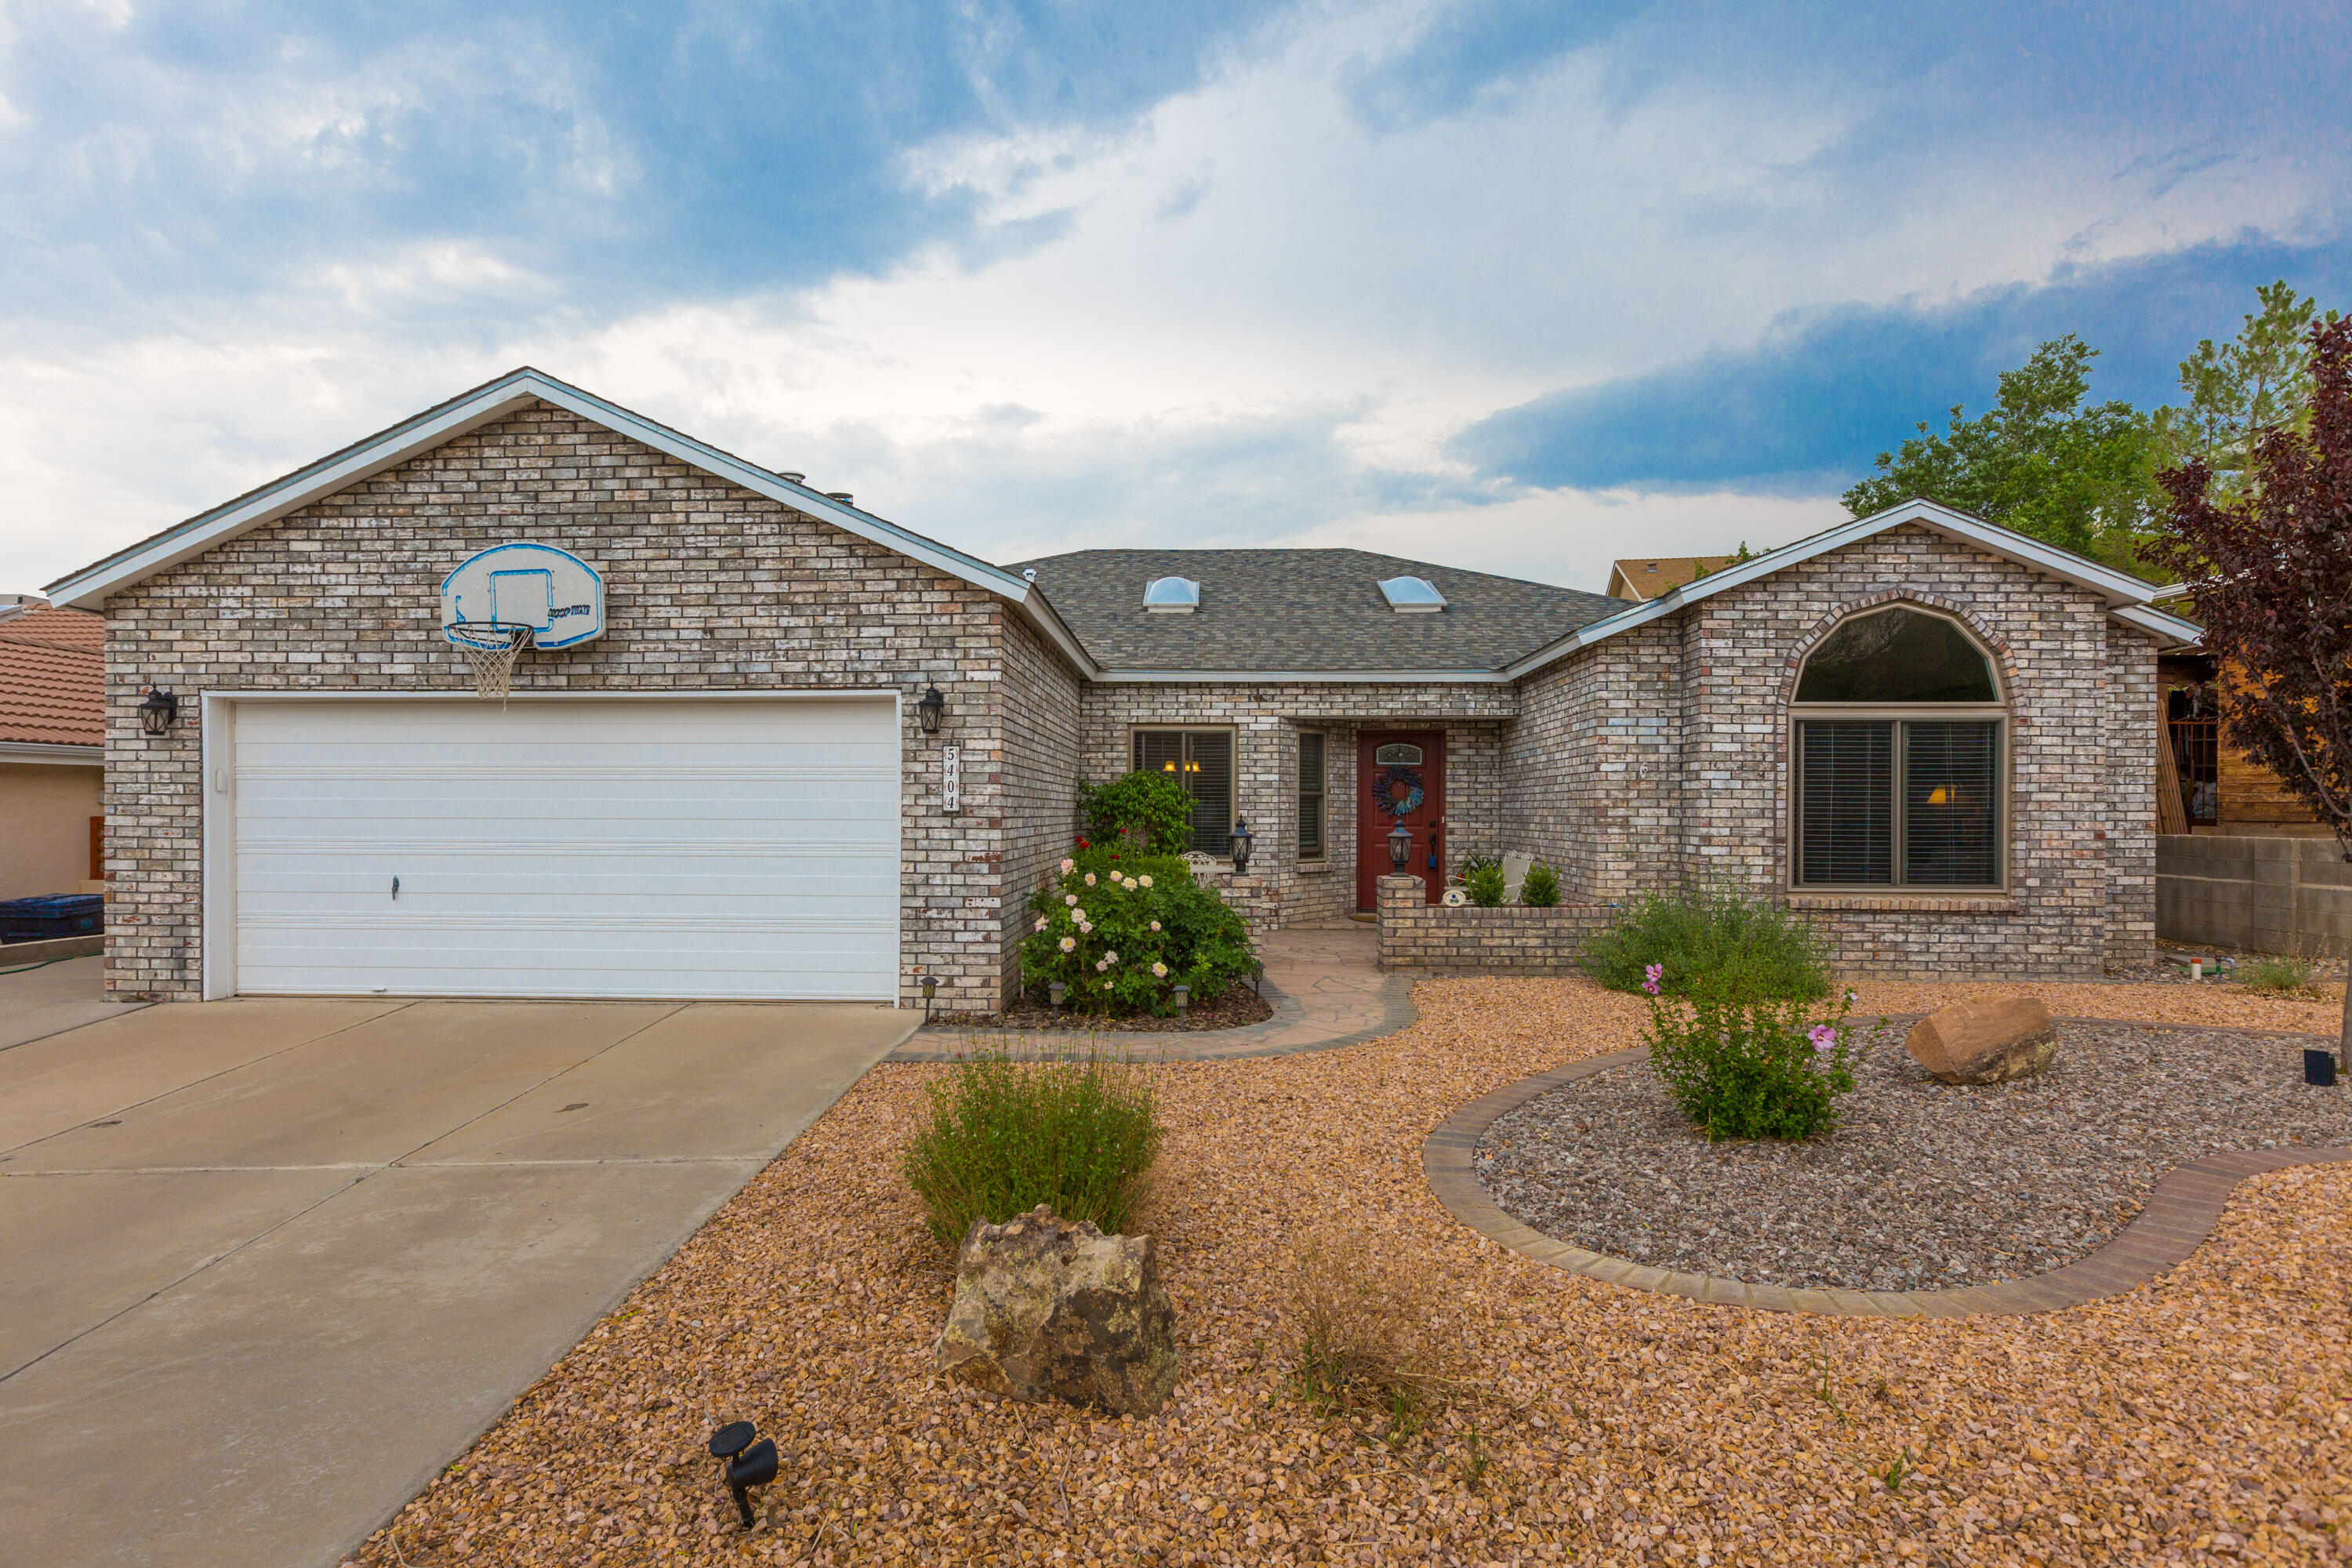 Enjoy this Custom built home, below the Petroglyph escarpment!  A 4 bedroom, single level, updated gem in an established quiet neighborhood.  The owners have meticulously updated all of the windows, (HEE) doors, flooring (tile throughout), and just look at the beautiful sunroom! 2 fireplaces, a jet tub, and oversized owners suite to rest your weary body.  A nice flowing kitchen, separate laundry room, dinette and a more formal dining area.  The front is fully landscaped and the back has been made completely ready for you to build your dream yard!Double sinks in both baths give you room for kids or guests. The 2 car garage with work bench and shelving will help you organize and keep your autos out of the weather. Come and see this one before it gets away!